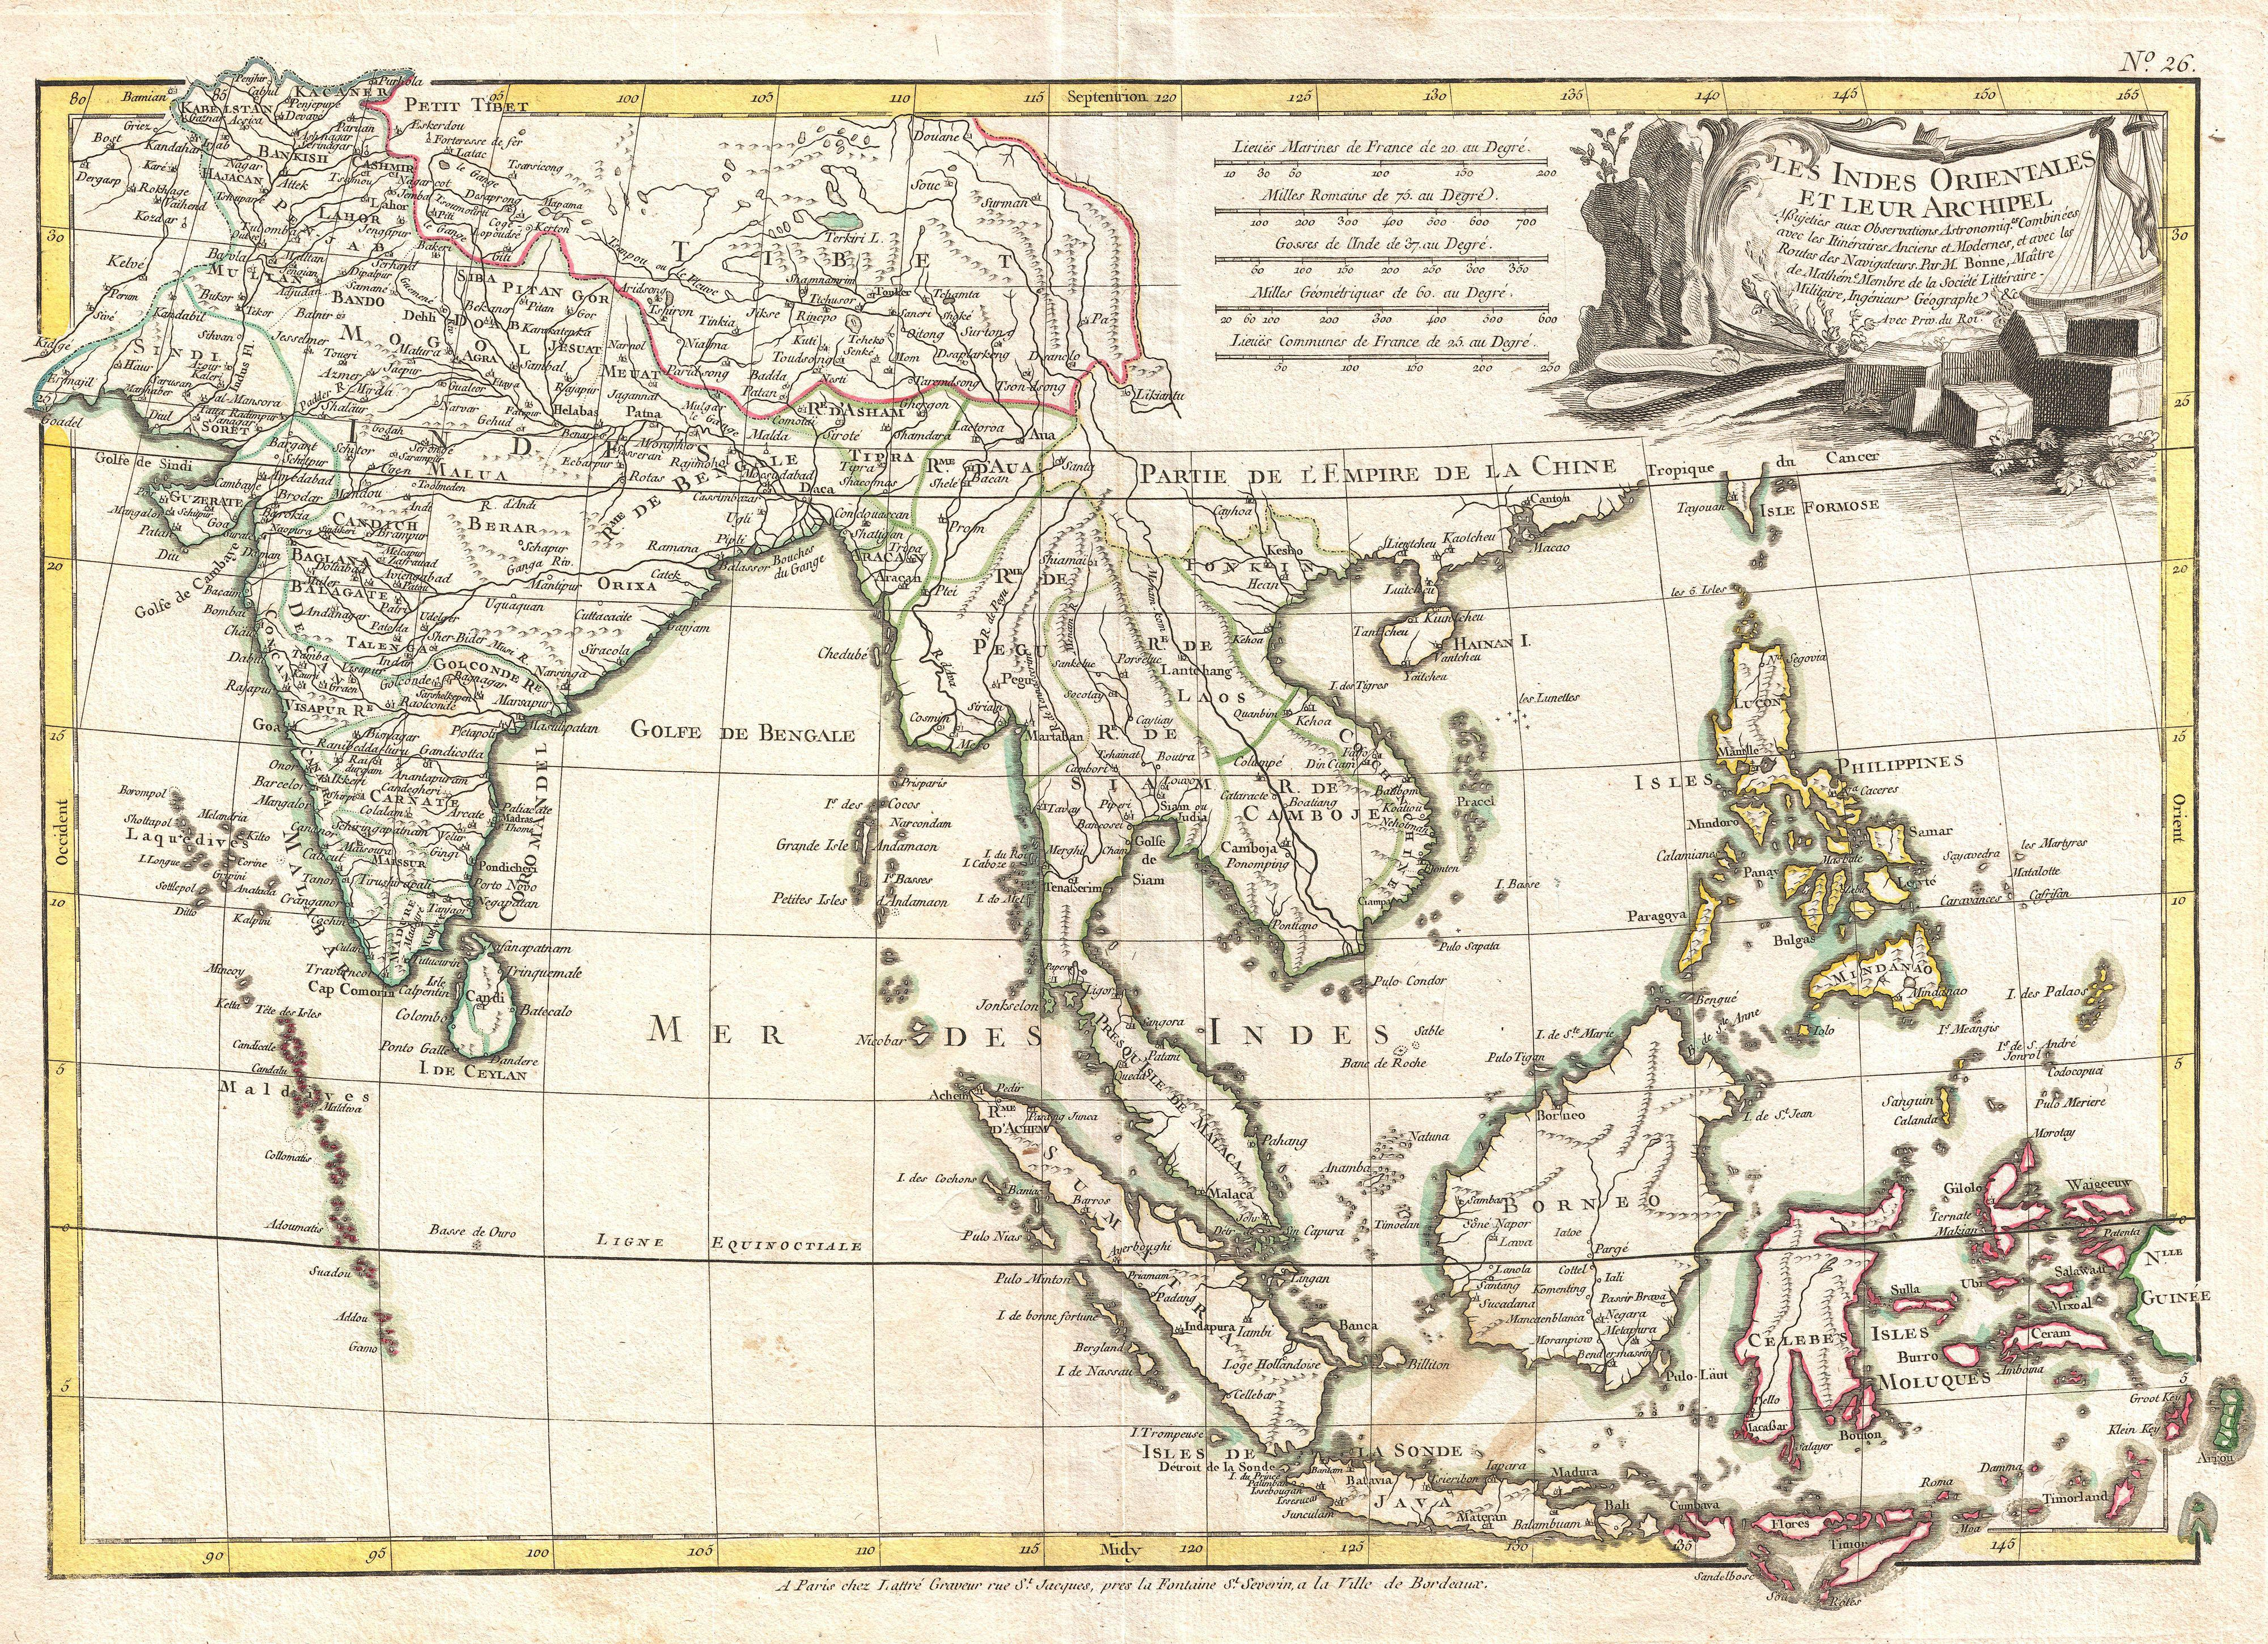 Kin trc vit vietnam architecture old maps of southeast asia 1780 raynal and bonne map of southeast asia and the philippines gumiabroncs Gallery